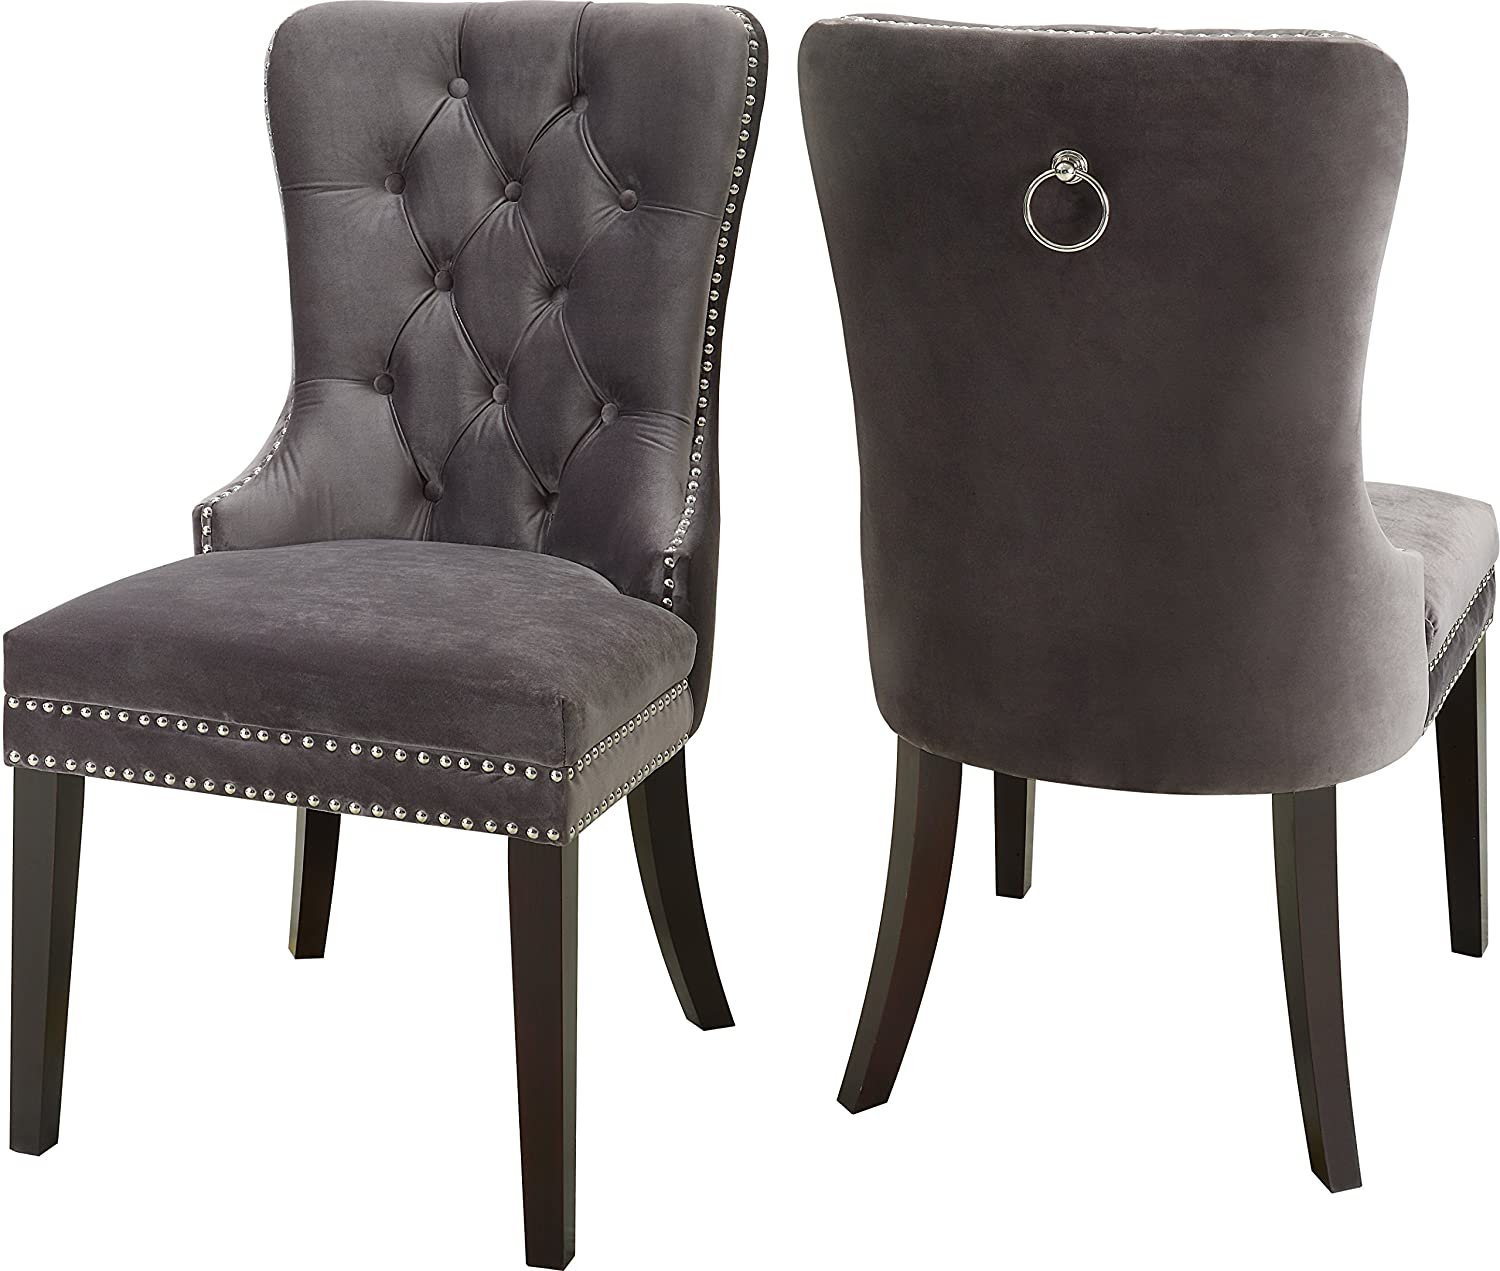 Meridian furniture 740grey c nikki grey velvet dining chair with wood legs luxurious button tufting and chrome nailhead trim 23 w x 23 d x 40 h grey